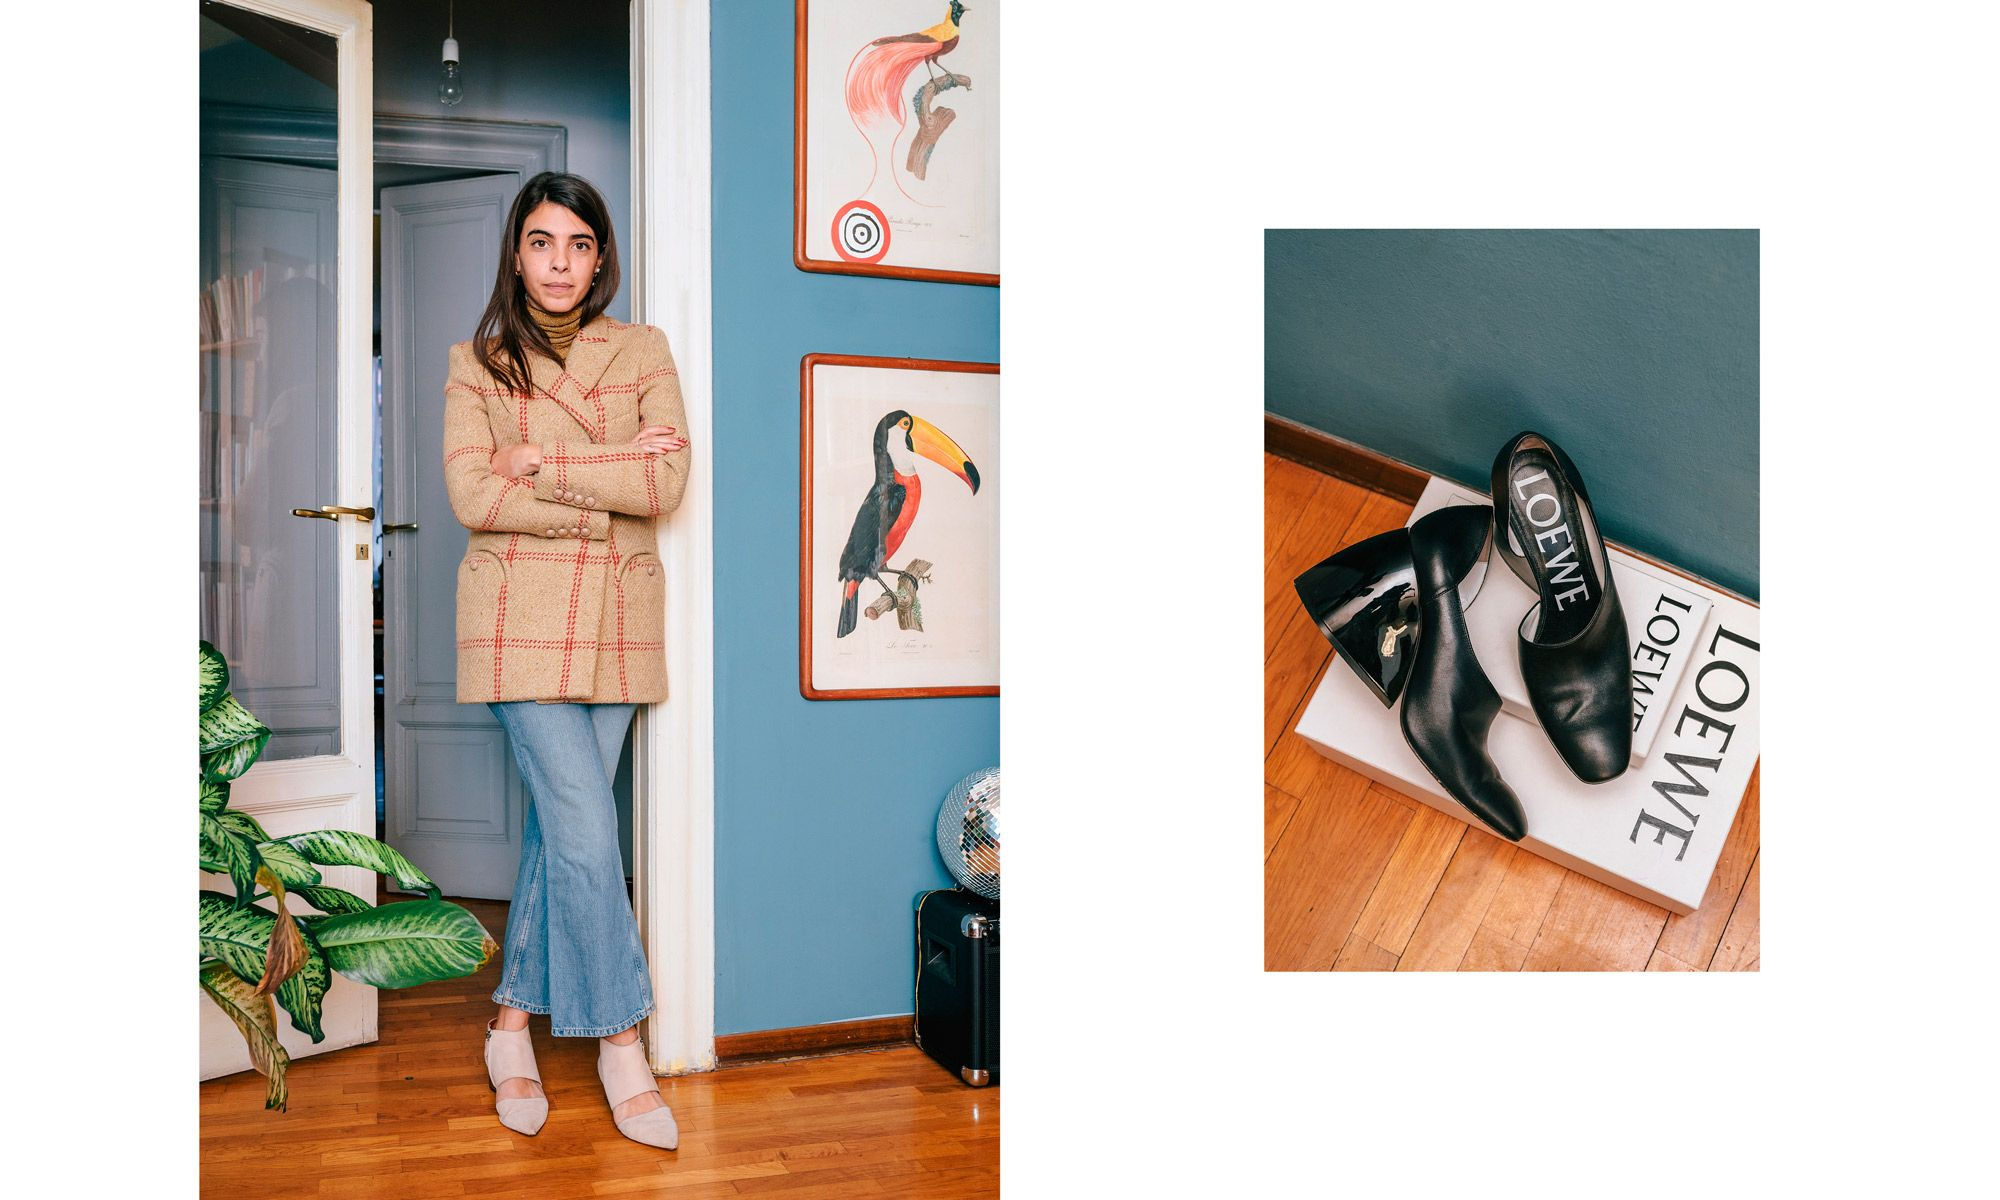 Outfit: Jacket from Bláze Milano, jeans from Topshop and shoes from Missoni. To the right: Shoes from Loewe.